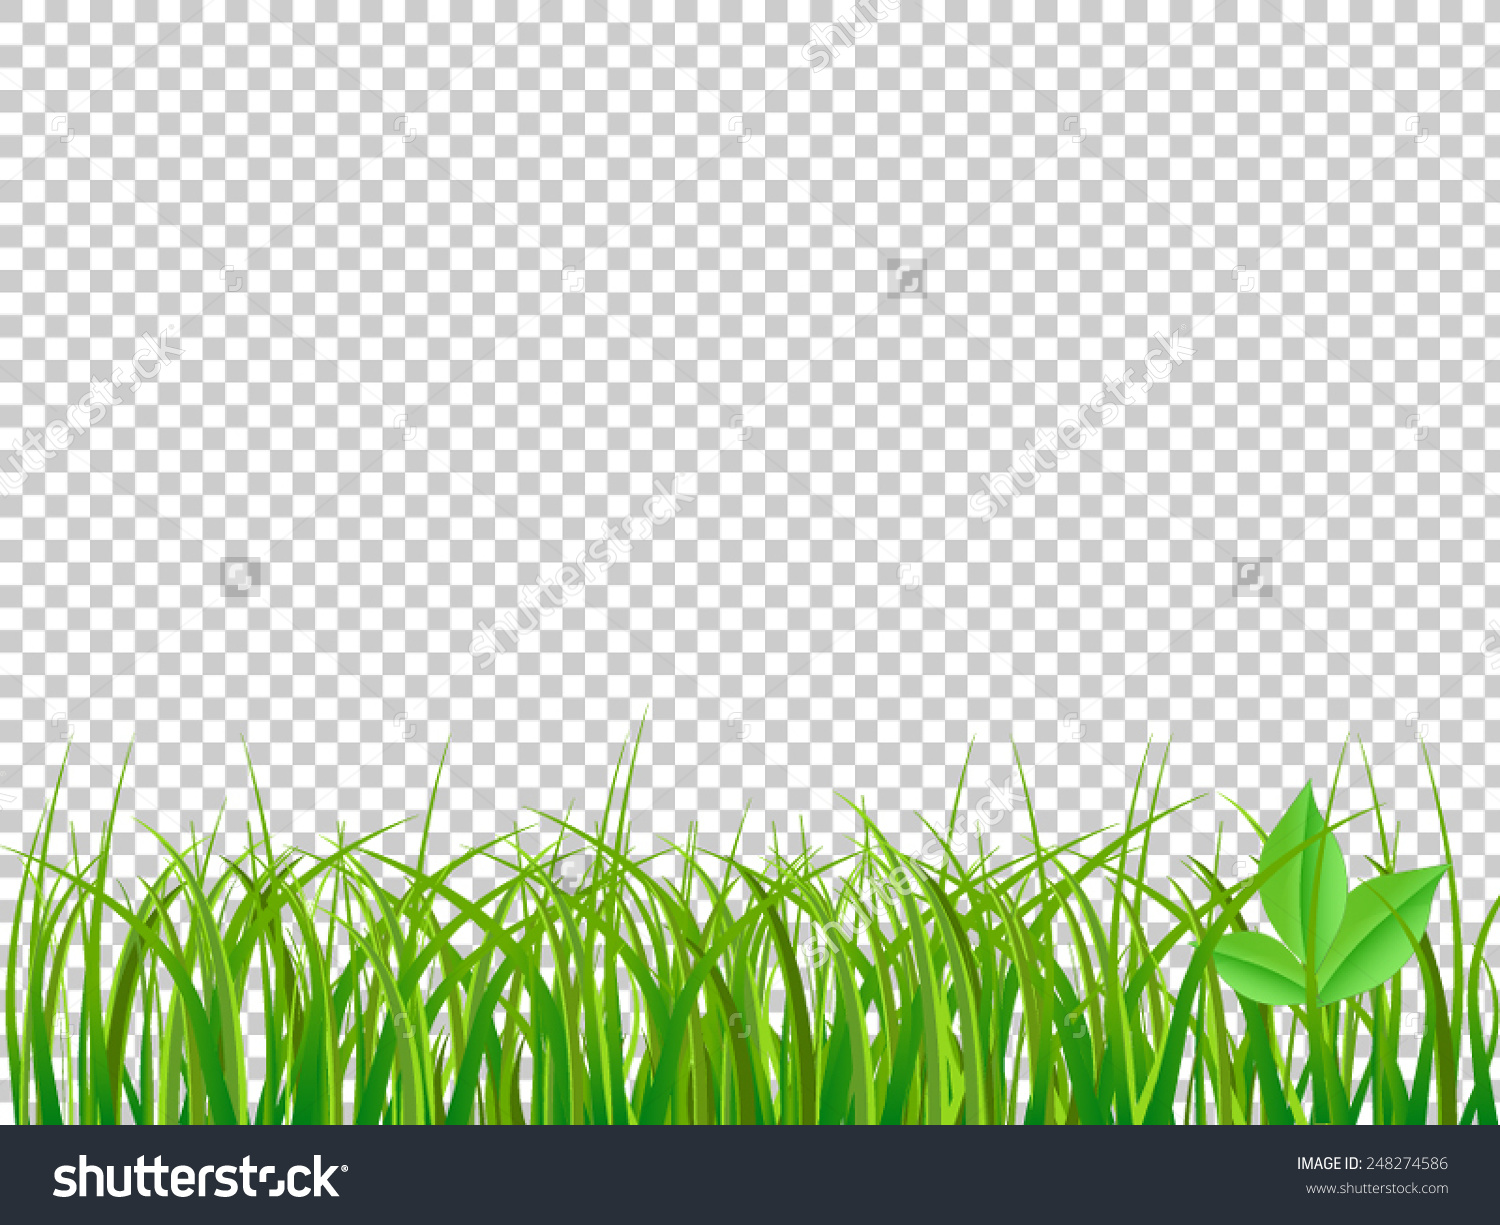 Green background clipart #12